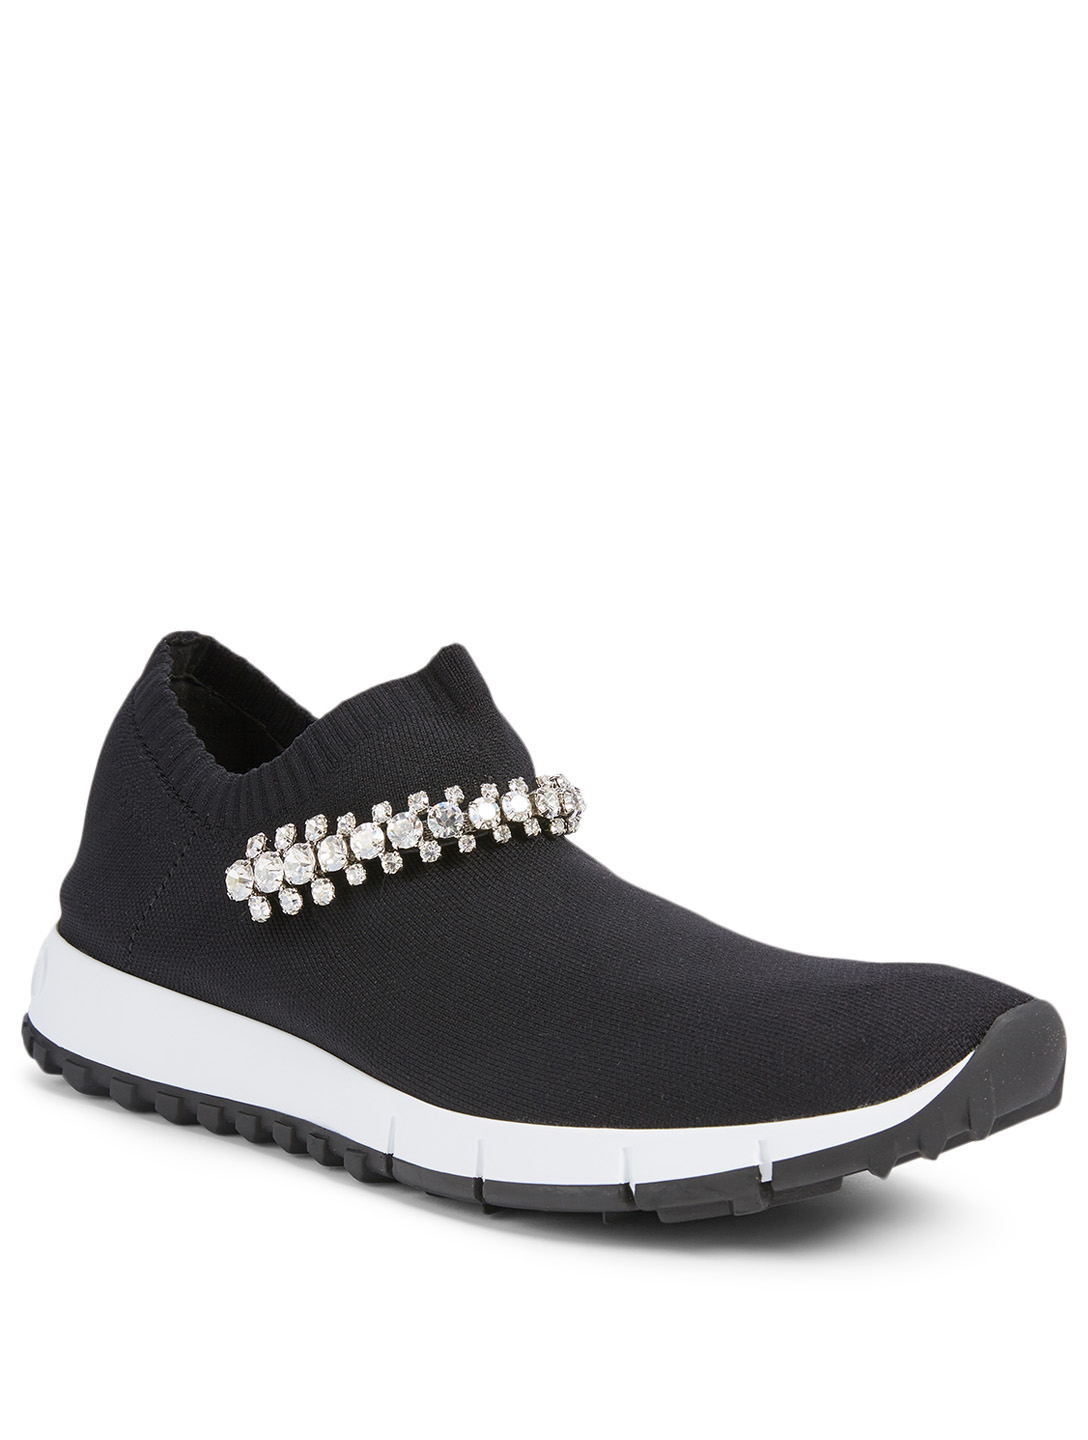 JIMMY CHOO Verona Knit Sock Sneakers With Crystals Women's Black